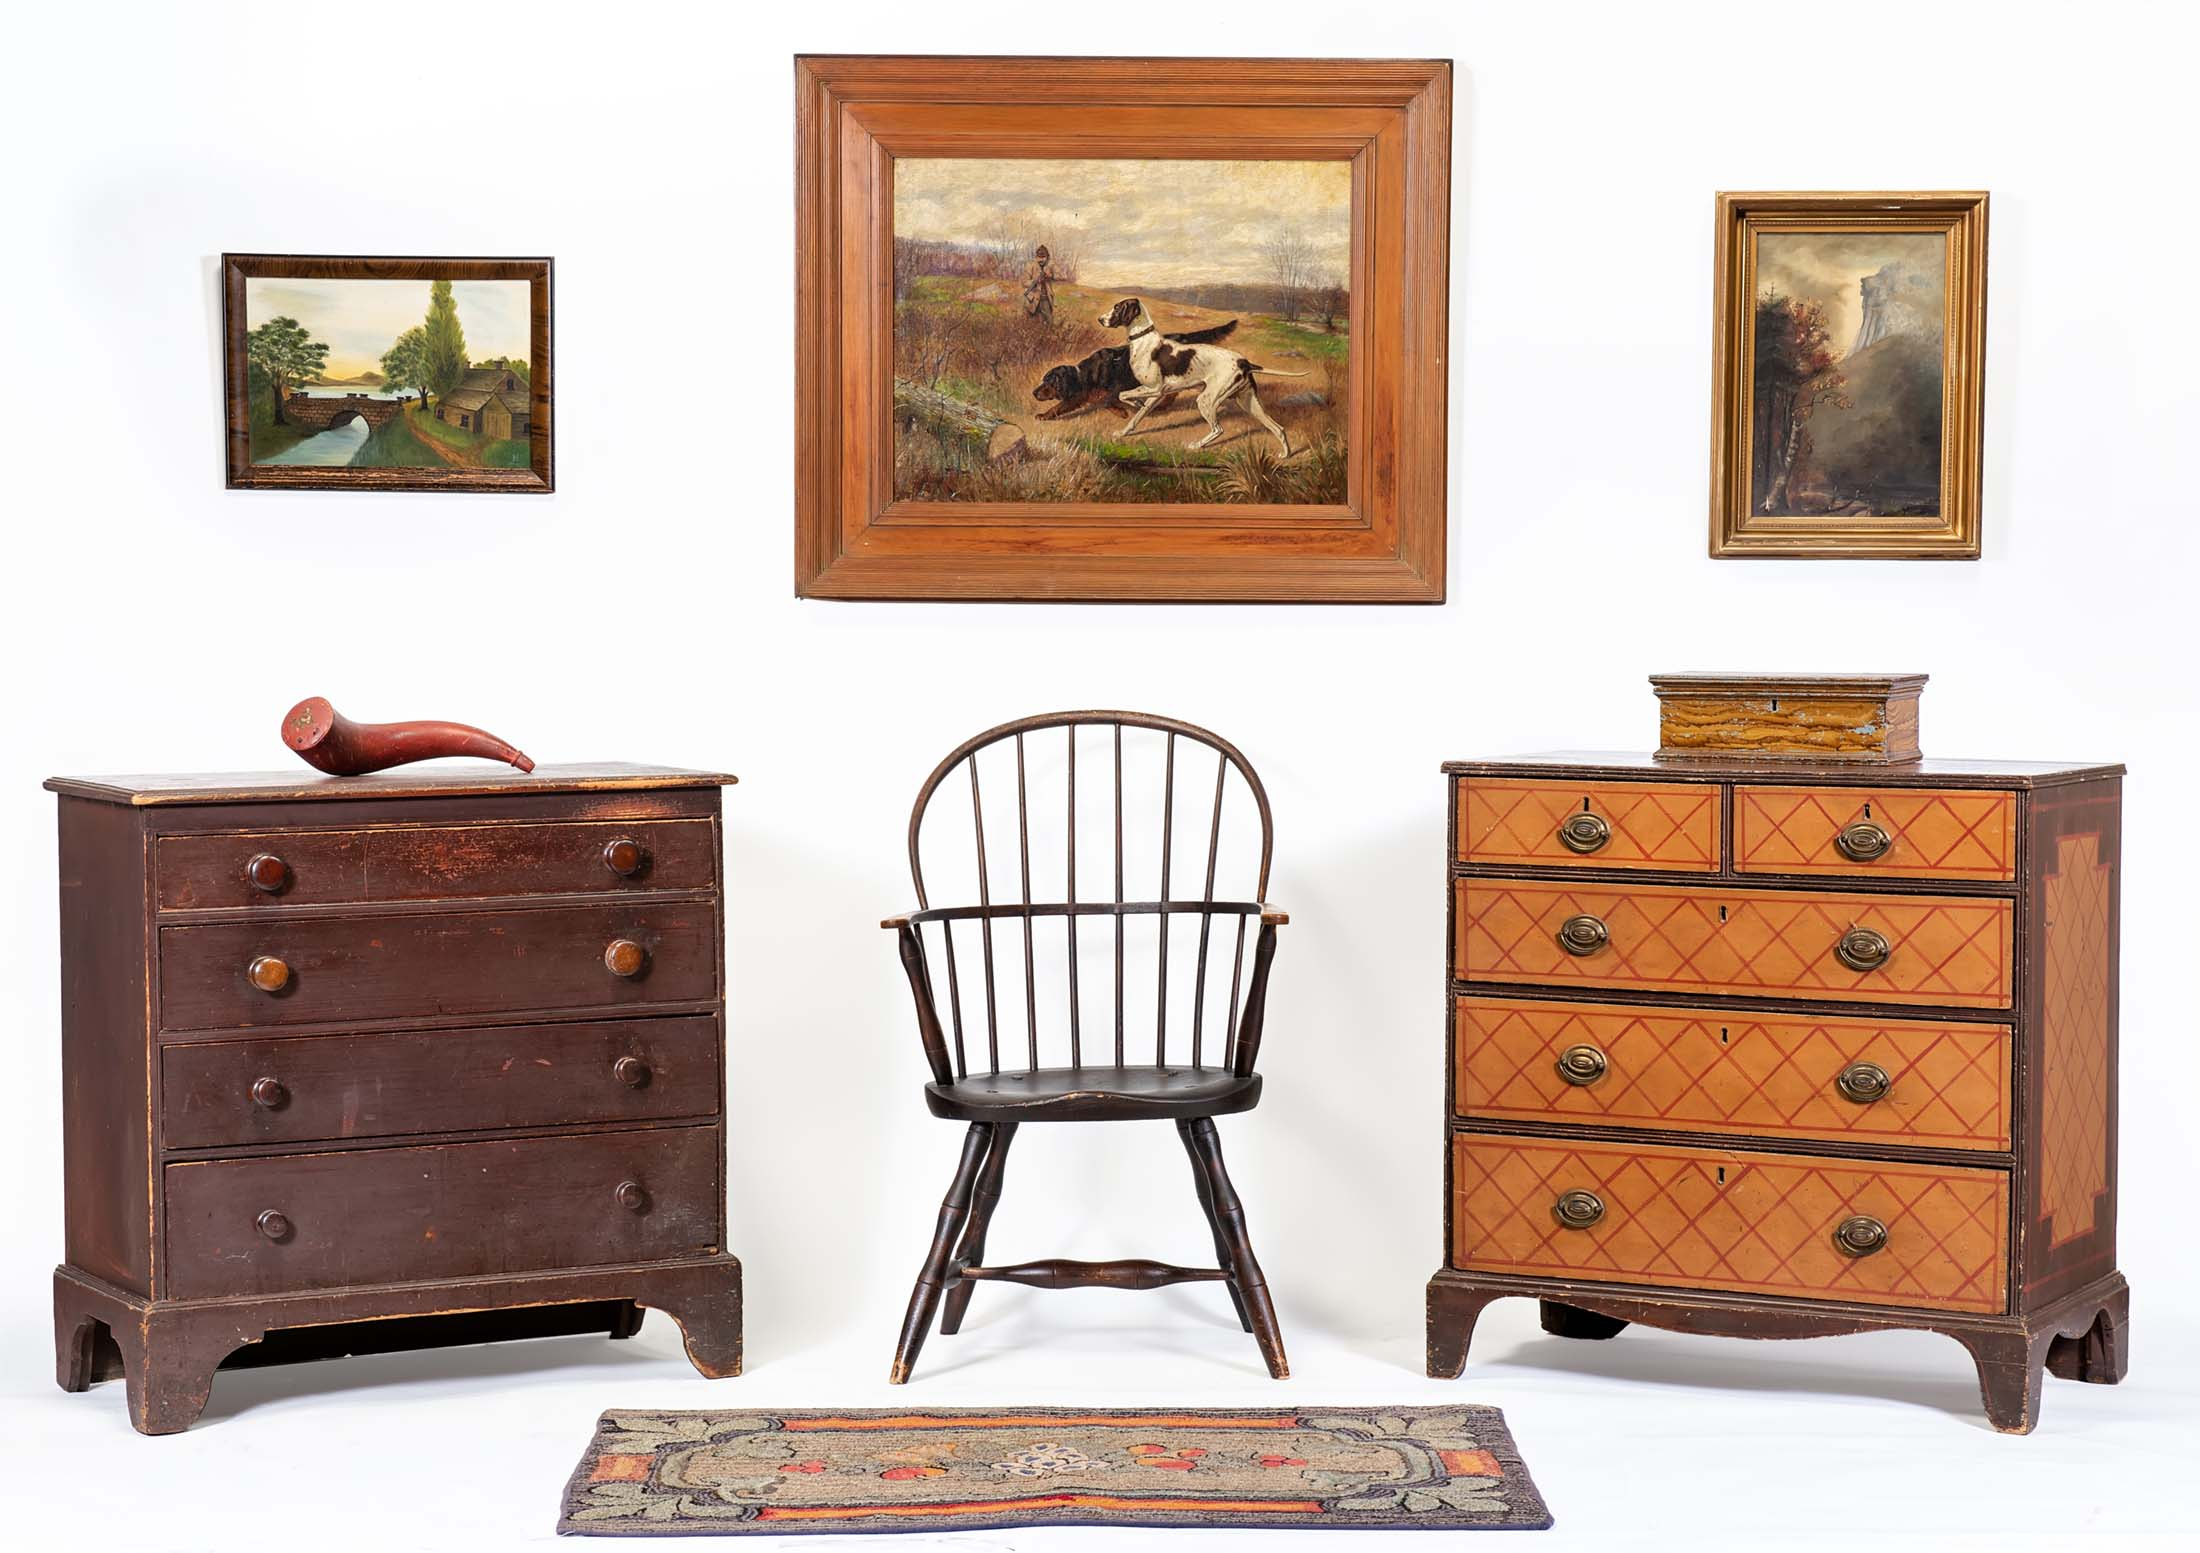 Auction of Estate Antiques Saturday, December 15, 2018 at 10